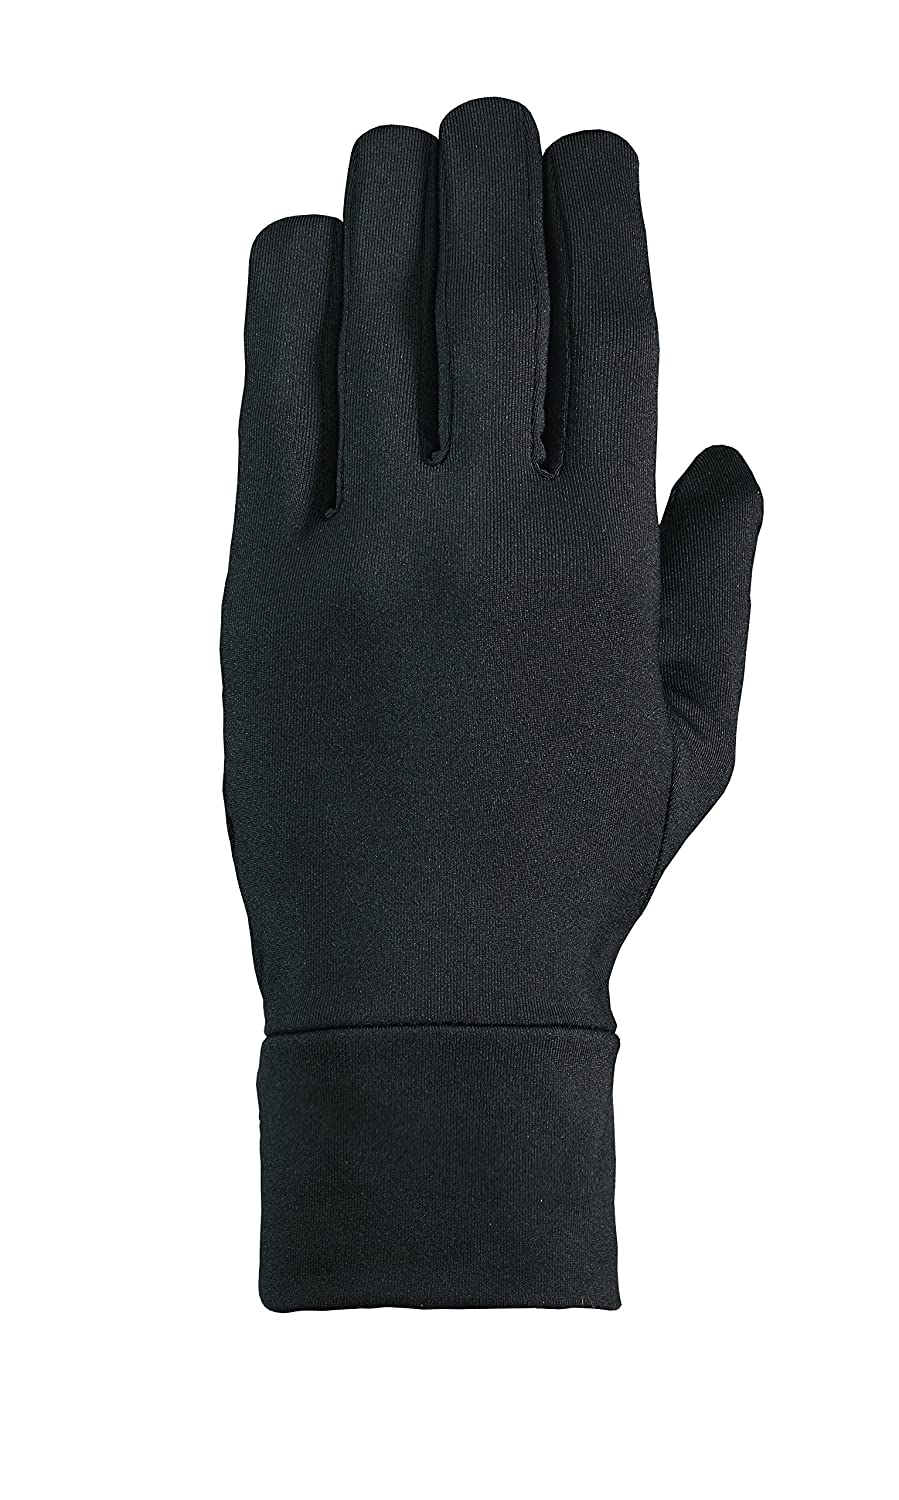 Seirus Innovation HWS Heatwave Glove Liner, Small/Medium, Black 8134